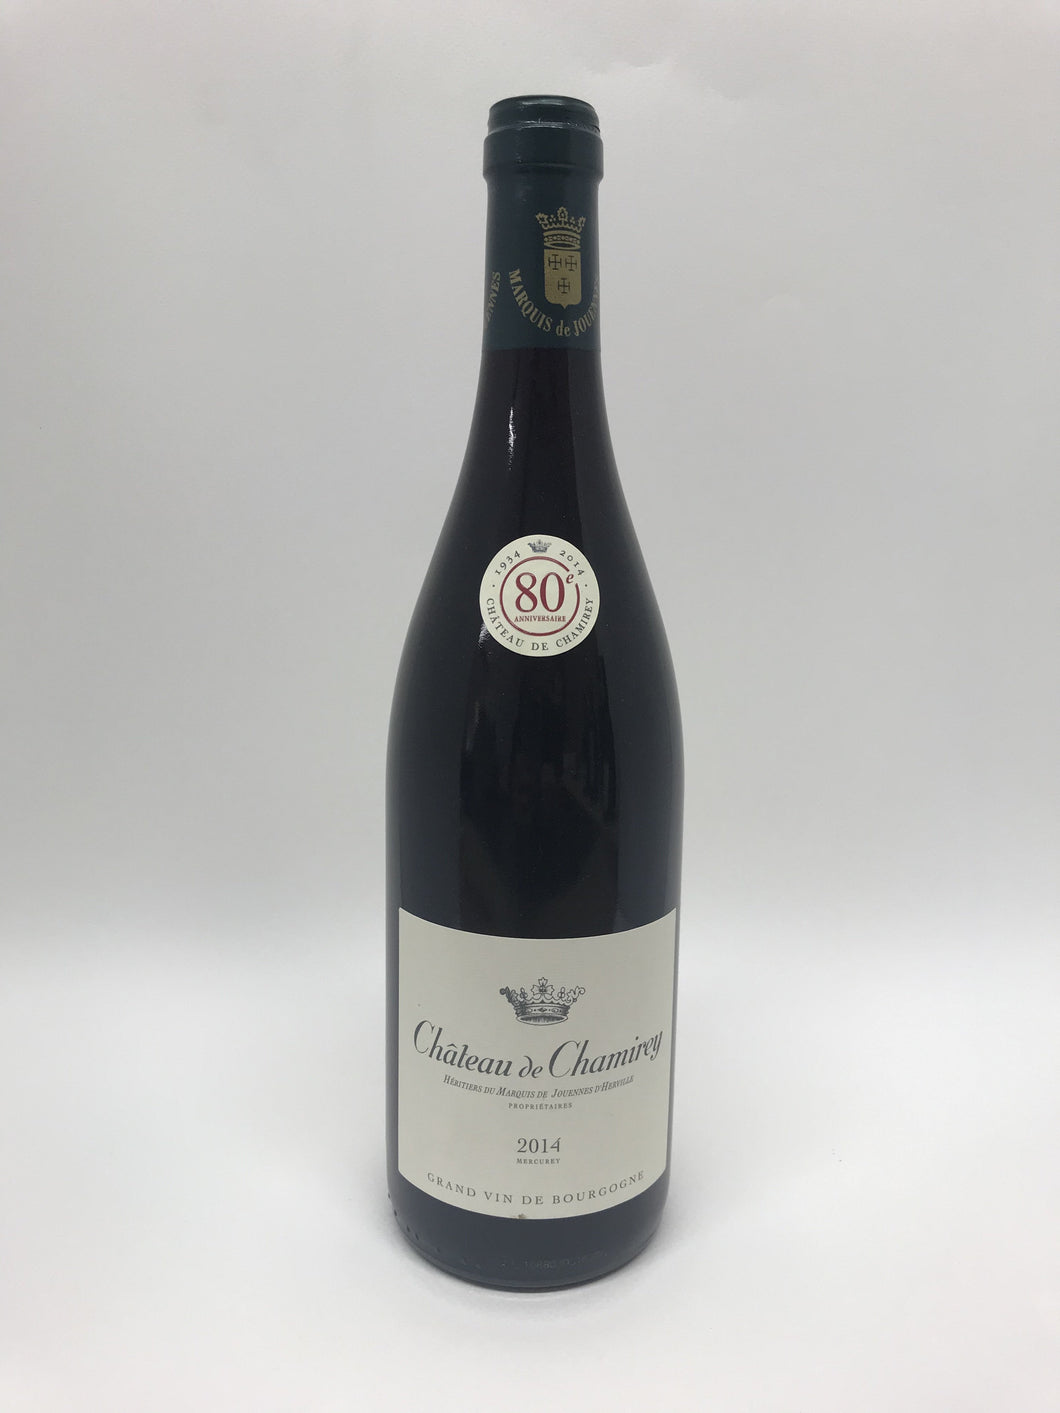 Chateau de Chamirey - Mercurey Rouge 14 750ml